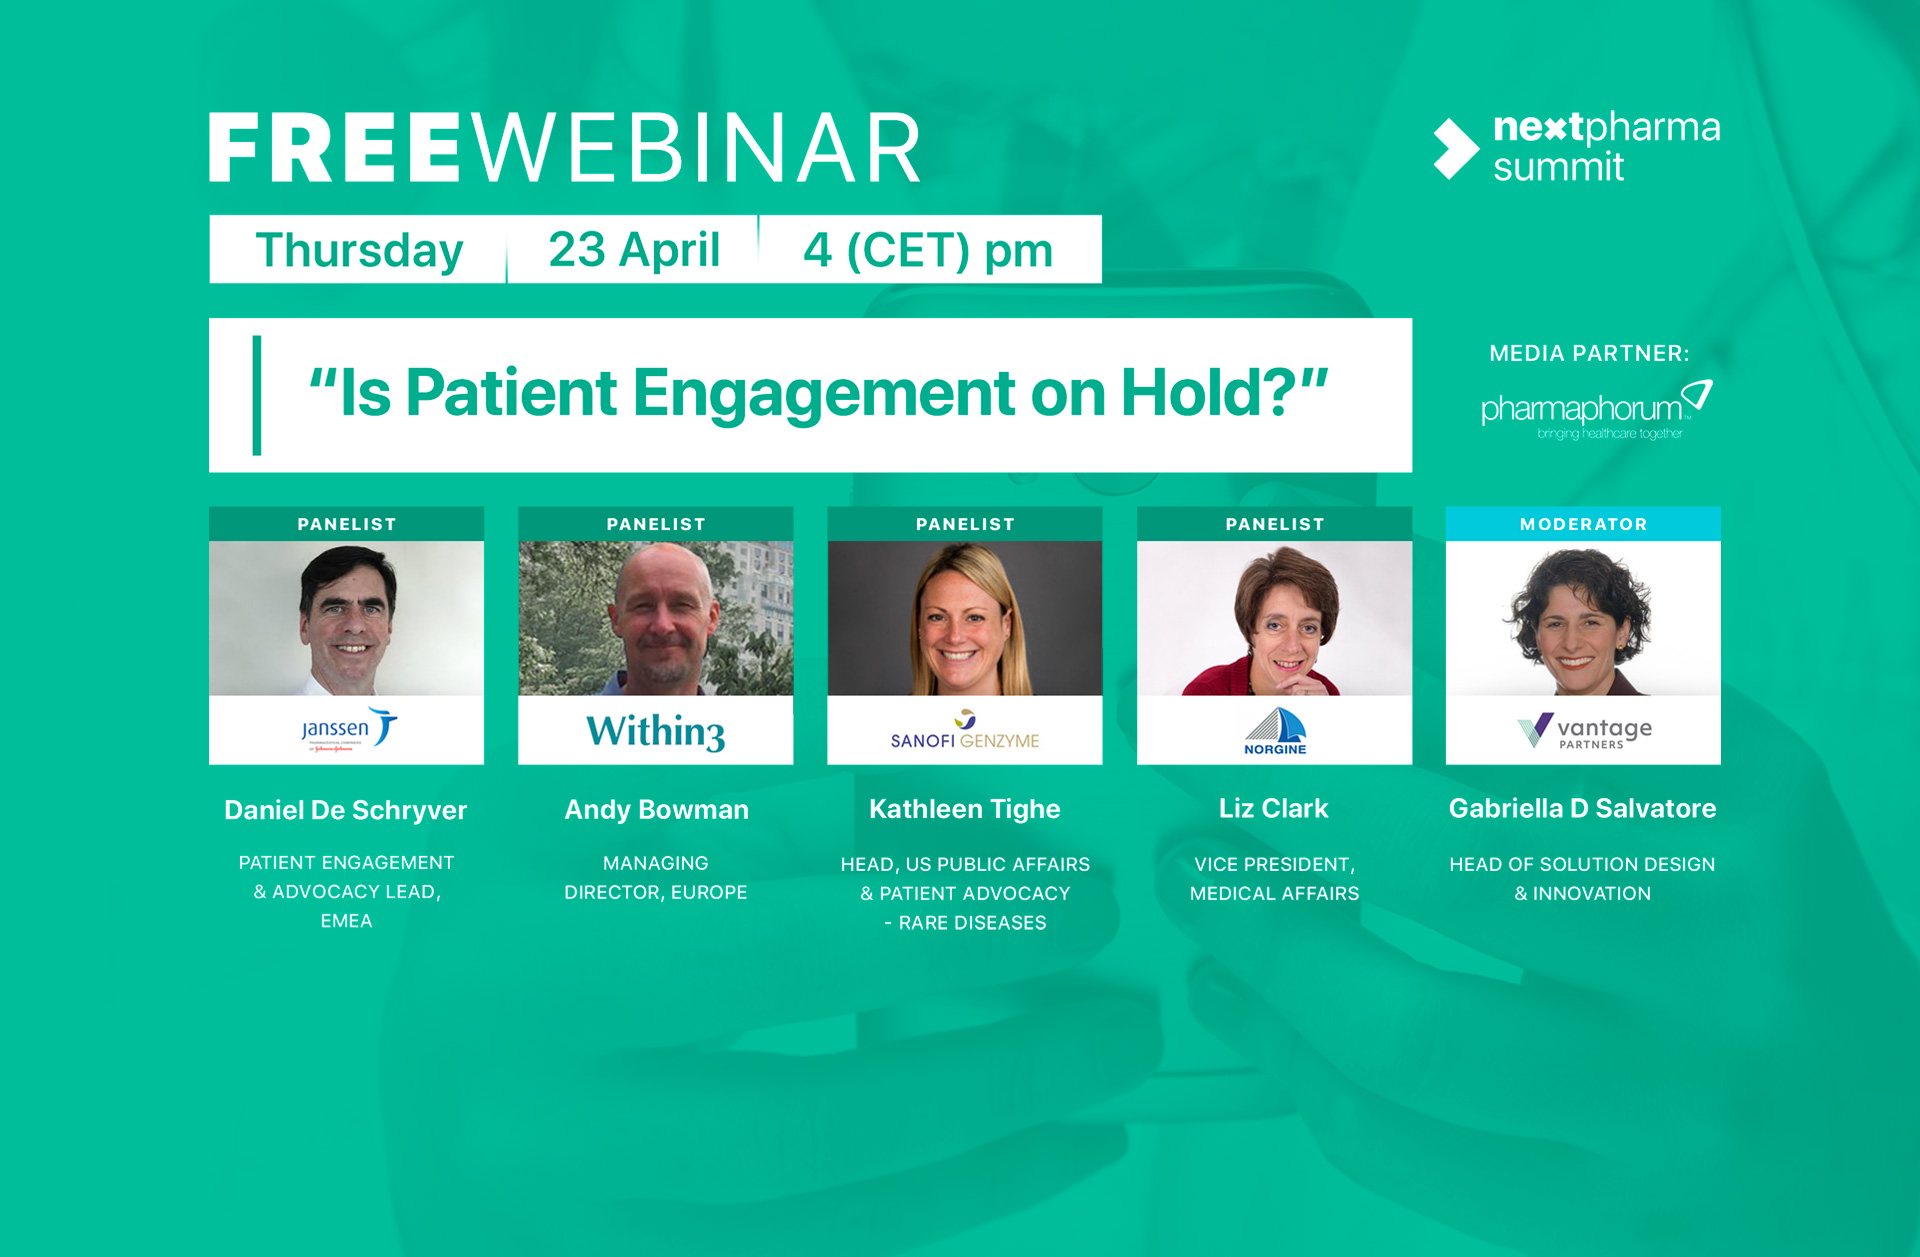 Is patient engagement on hold